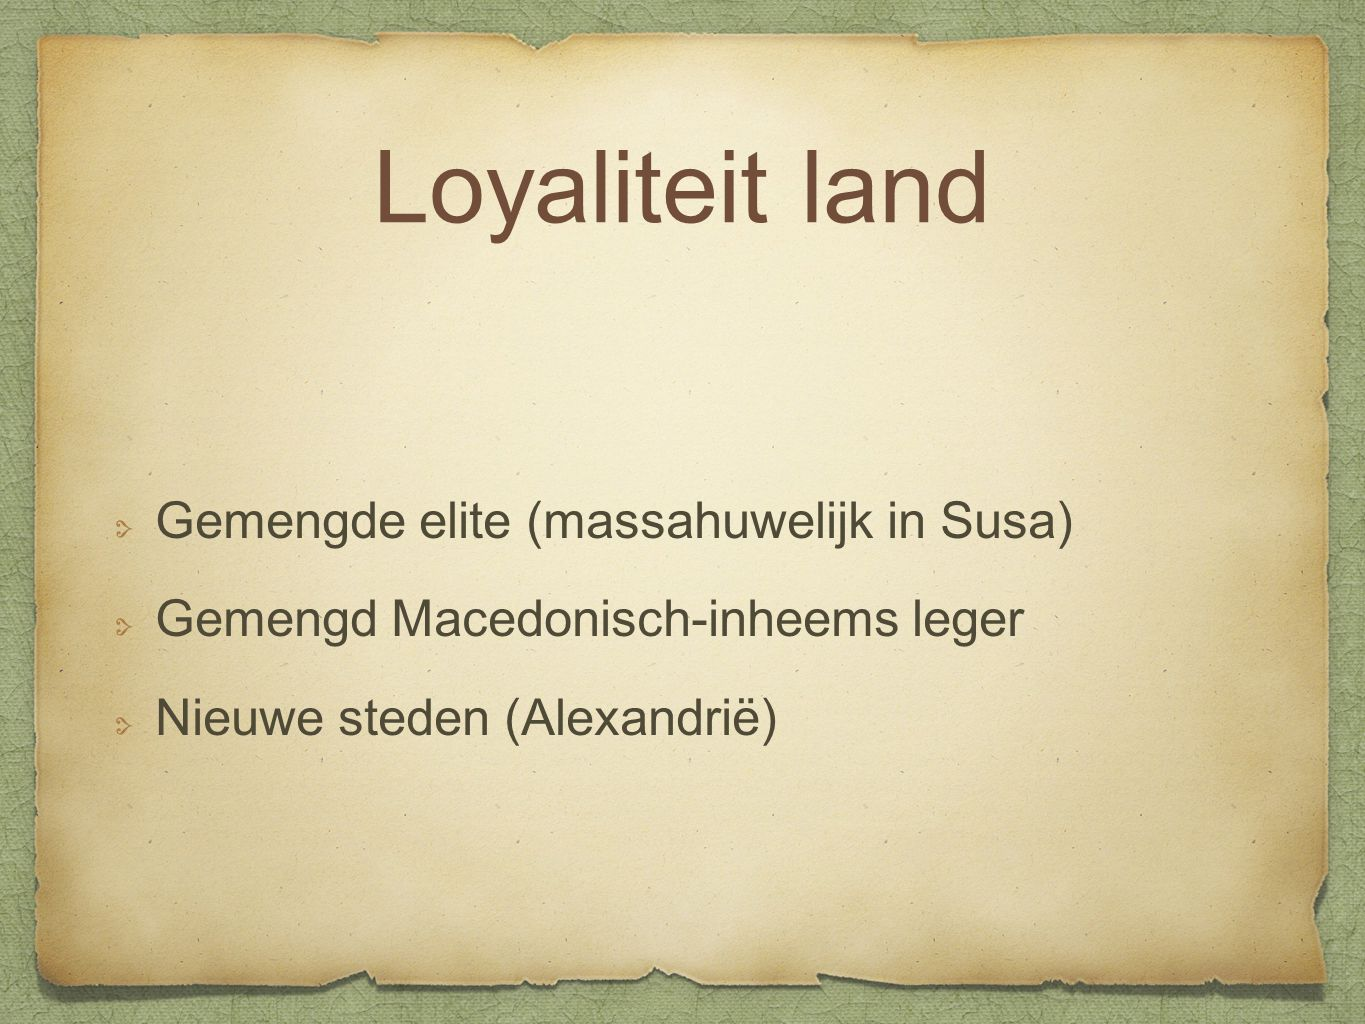 Loyaliteit land Gemengde elite (massahuwelijk in Susa)